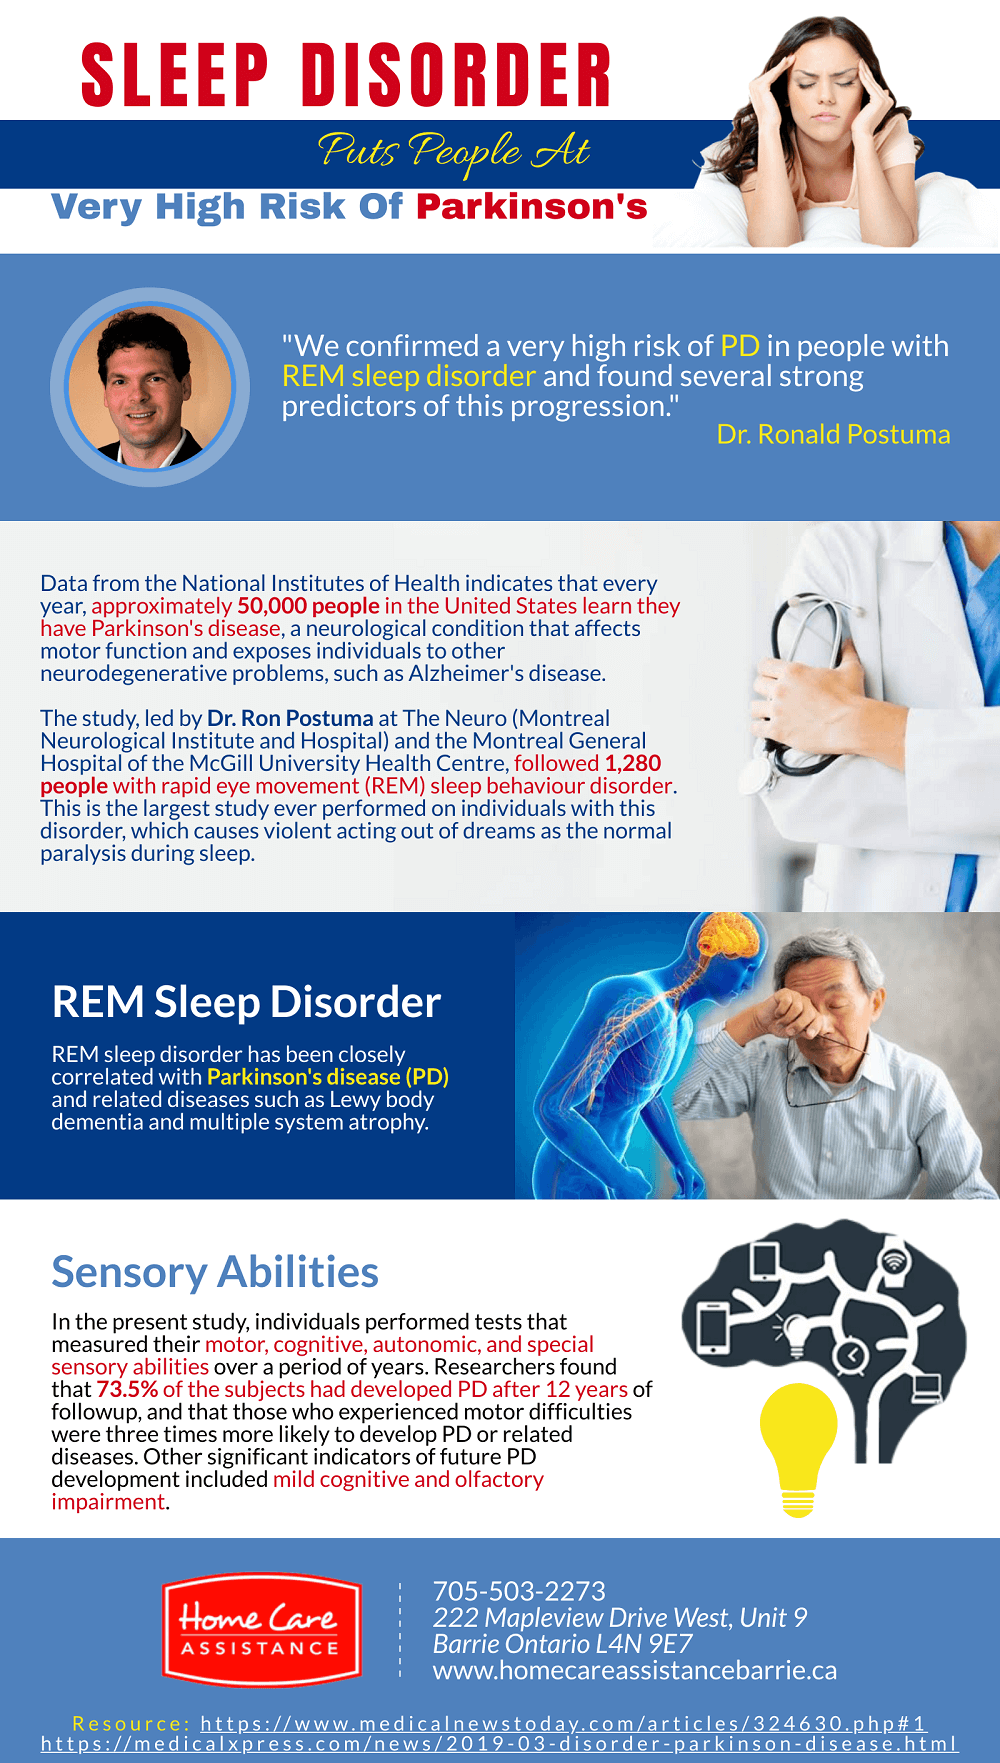 Sleep Disorder Puts People at Very High Risk of Parkinson's [Infographic]